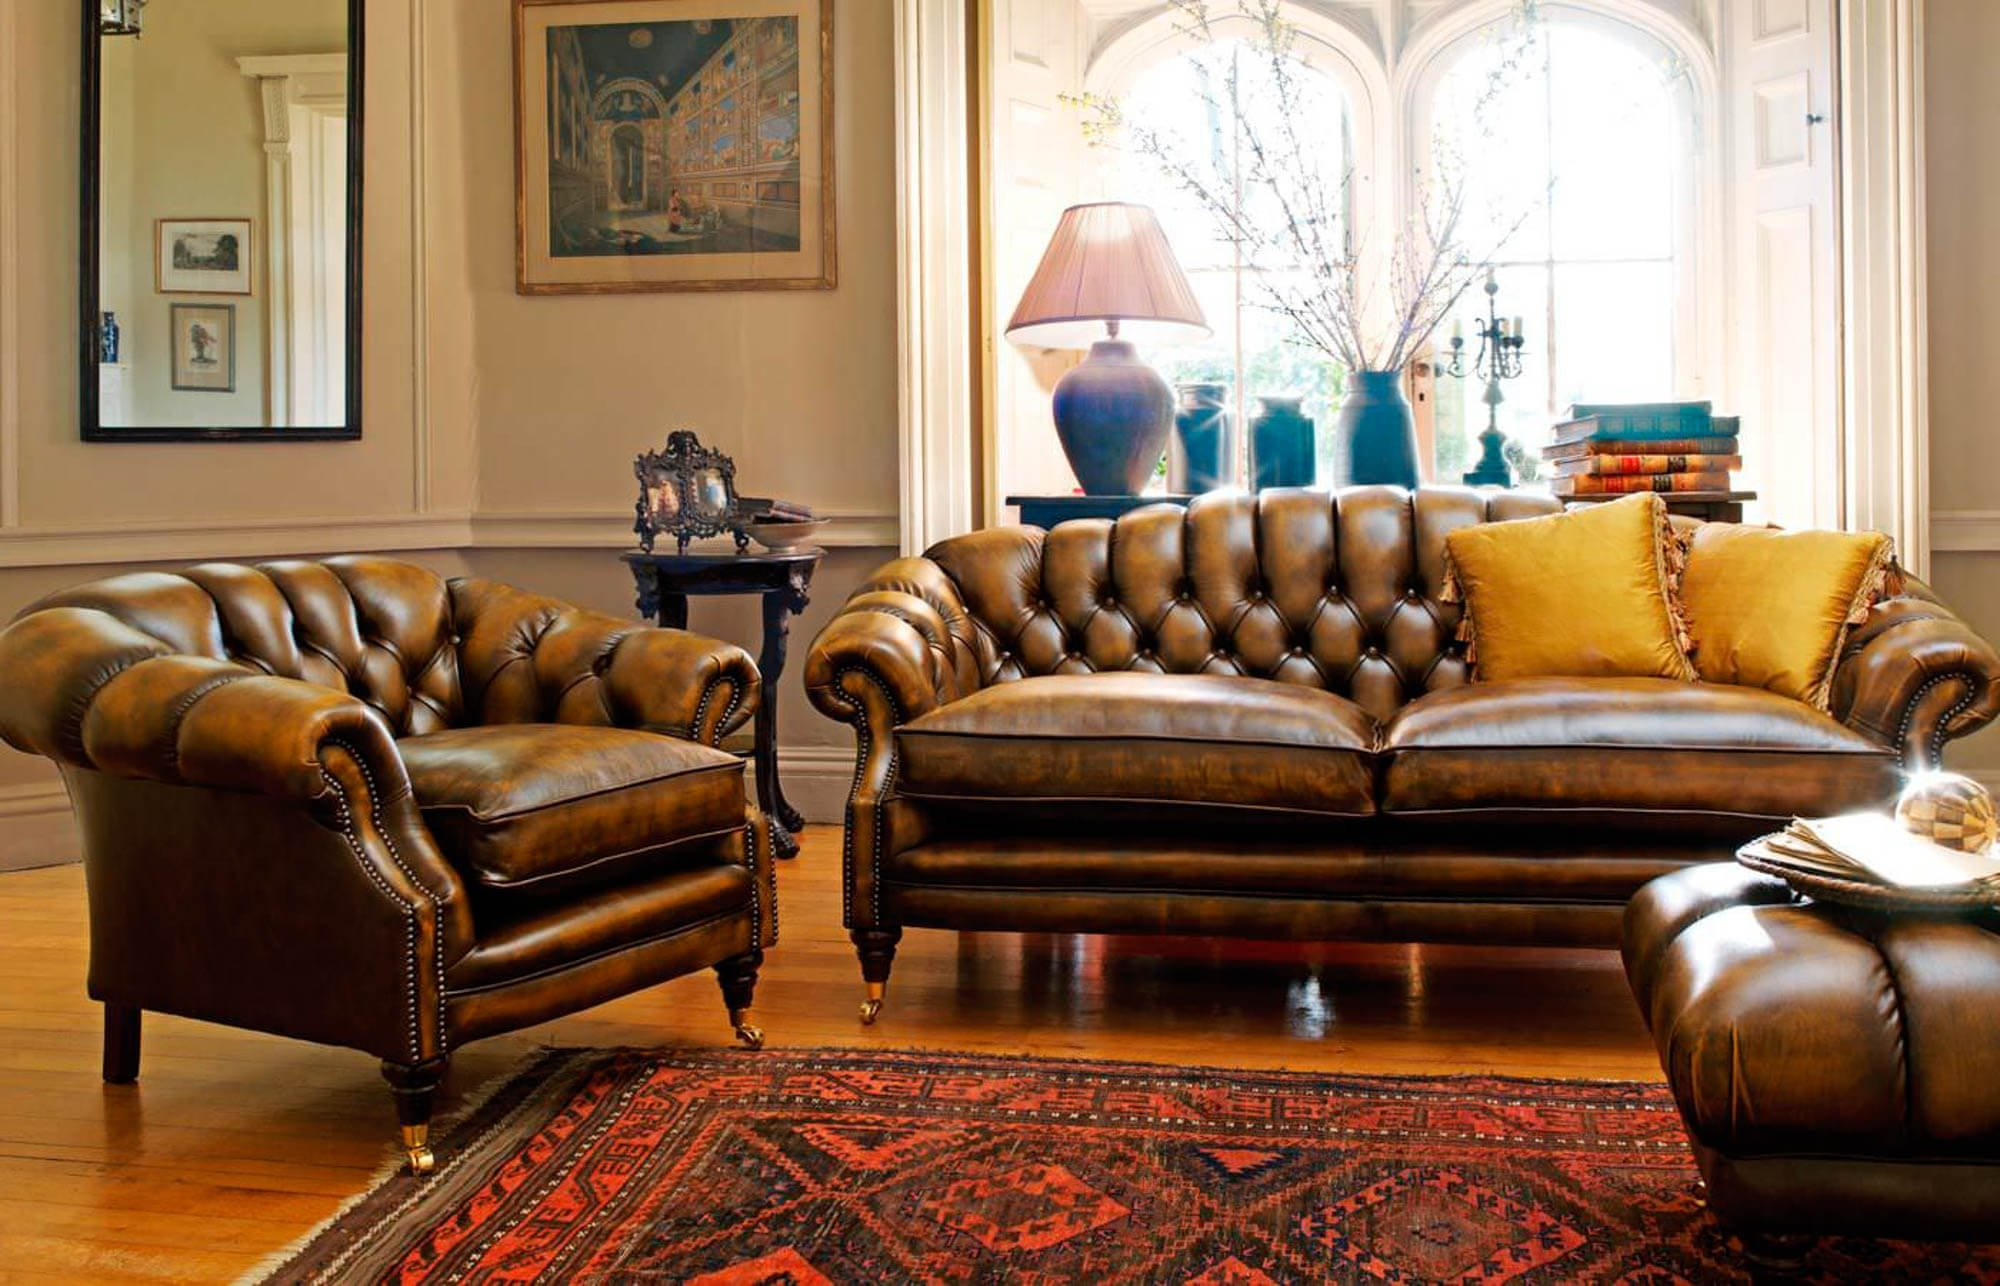 Most Recent Chesterfield Sofas And Chairs For Sofas, Chesterfield & Club Chair Primer — Gentleman's Gazette (View 7 of 15)